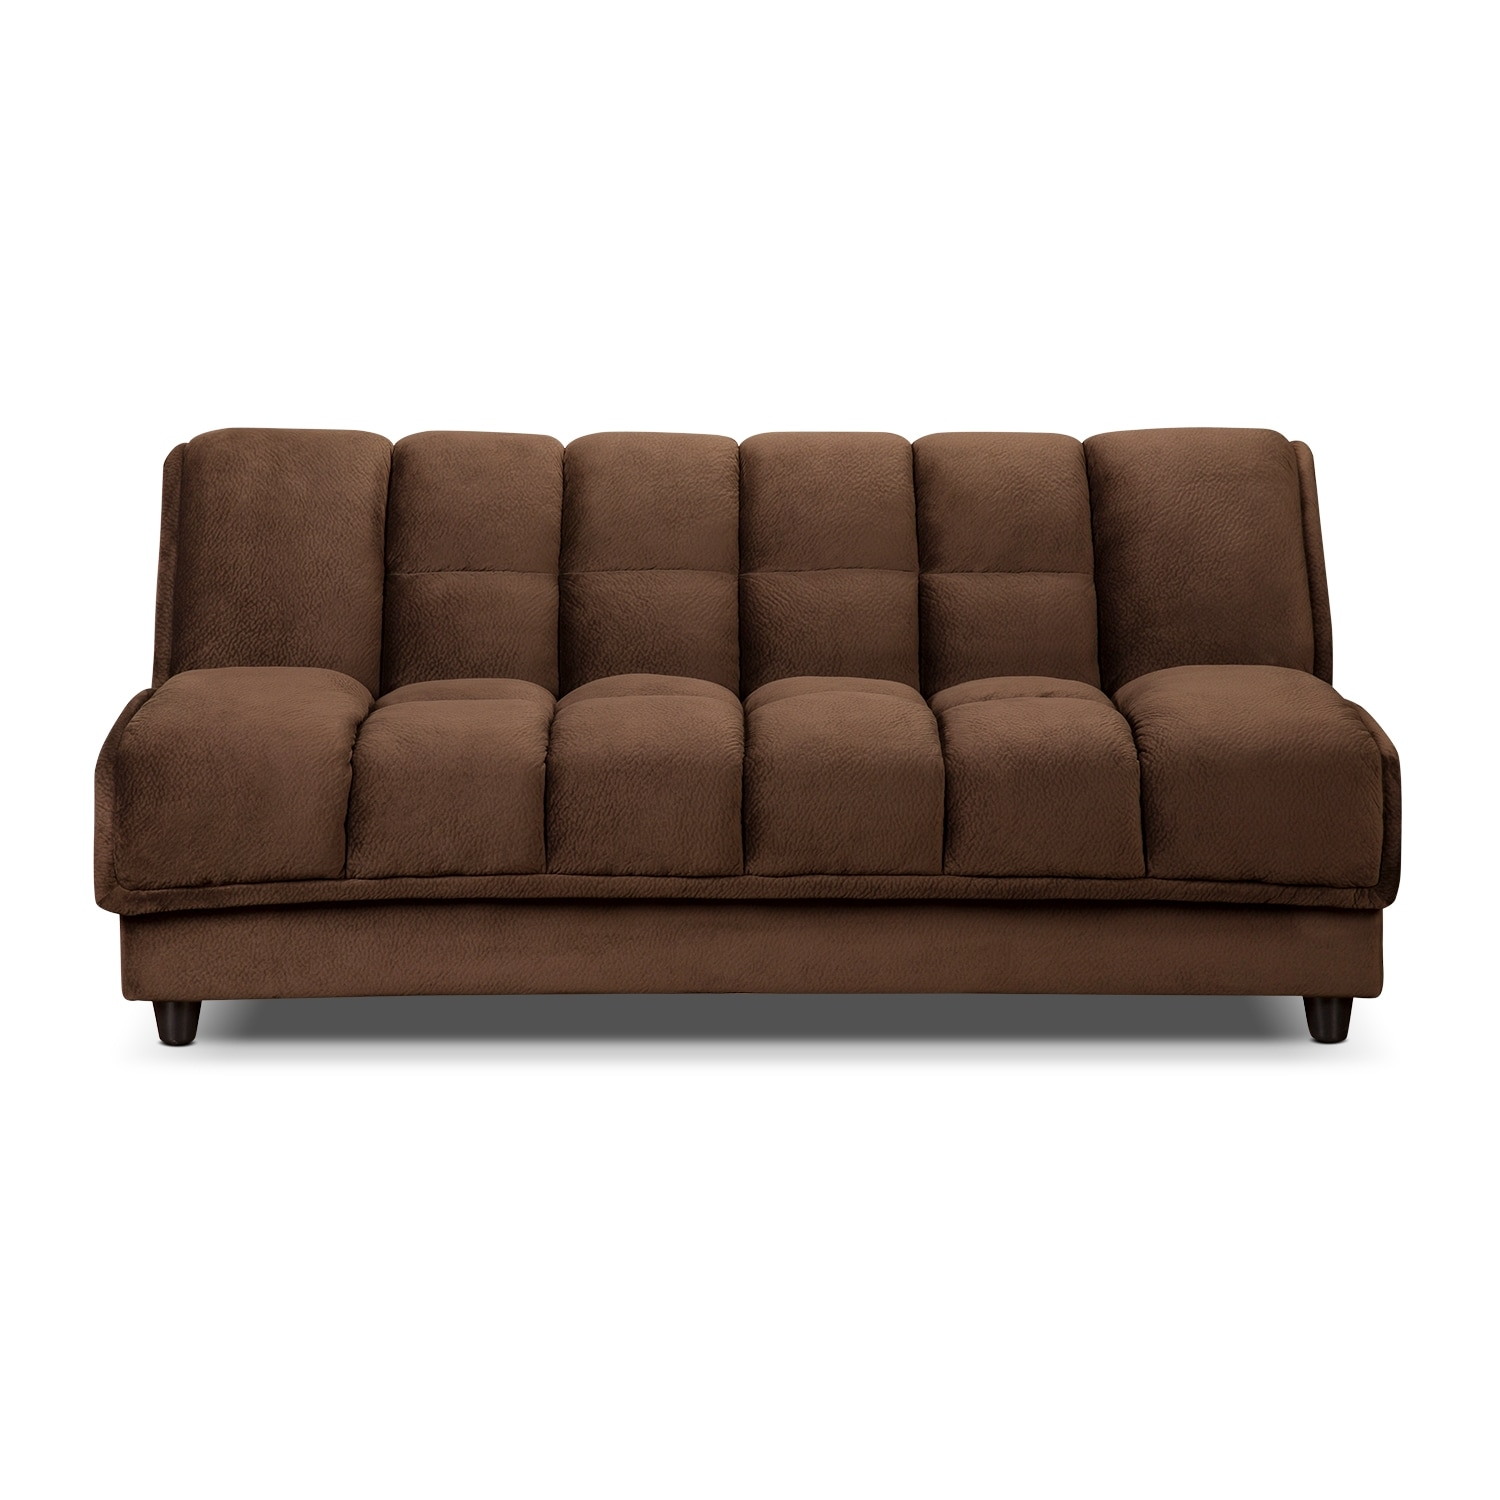 Bennett Futon Sofa Bed Espresso Value City Furniture